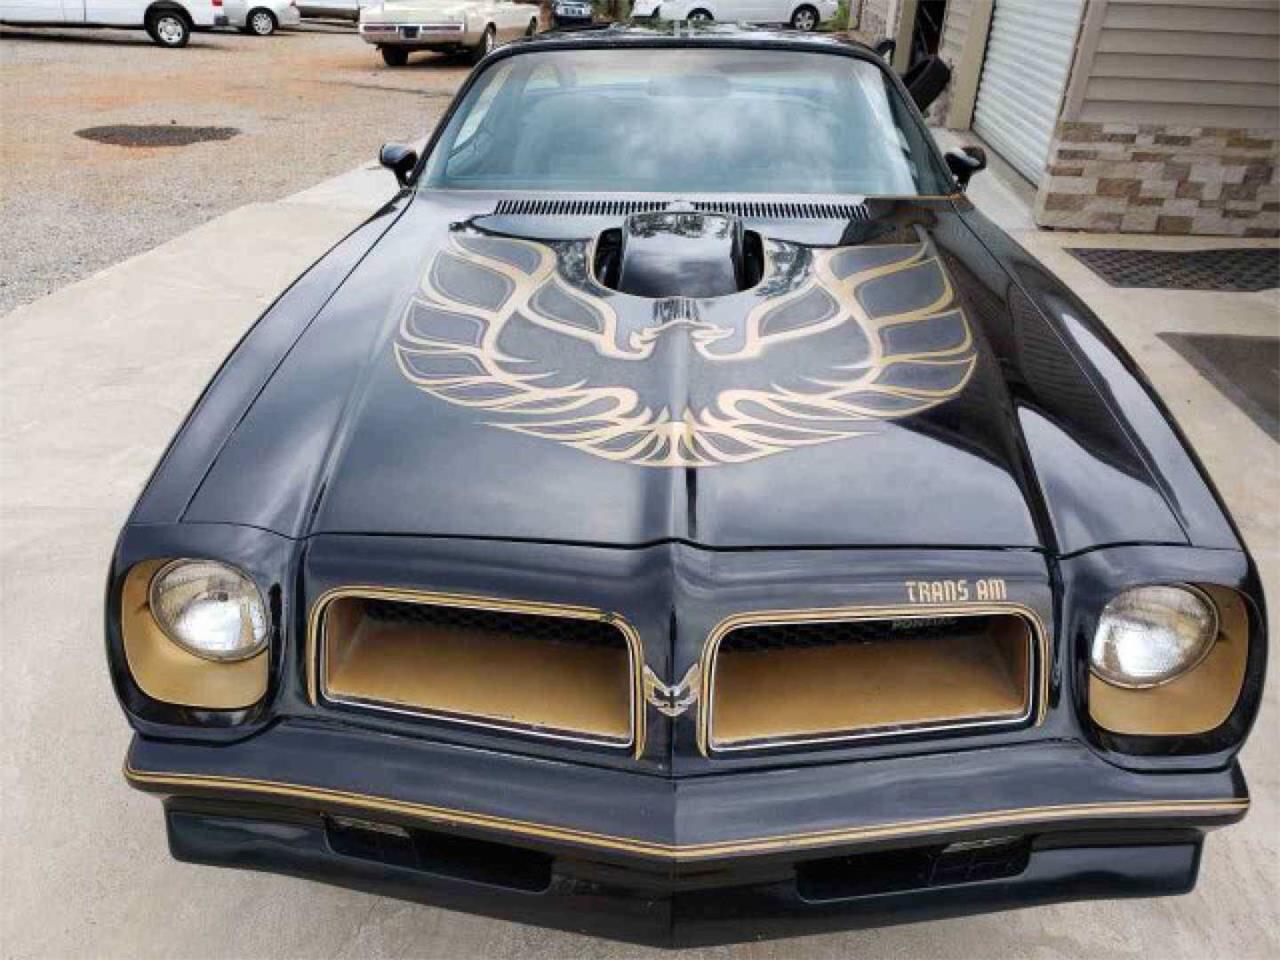 1976 Pontiac Firebird Trans Am (CC-1252375) for sale in Biloxi, Mississippi